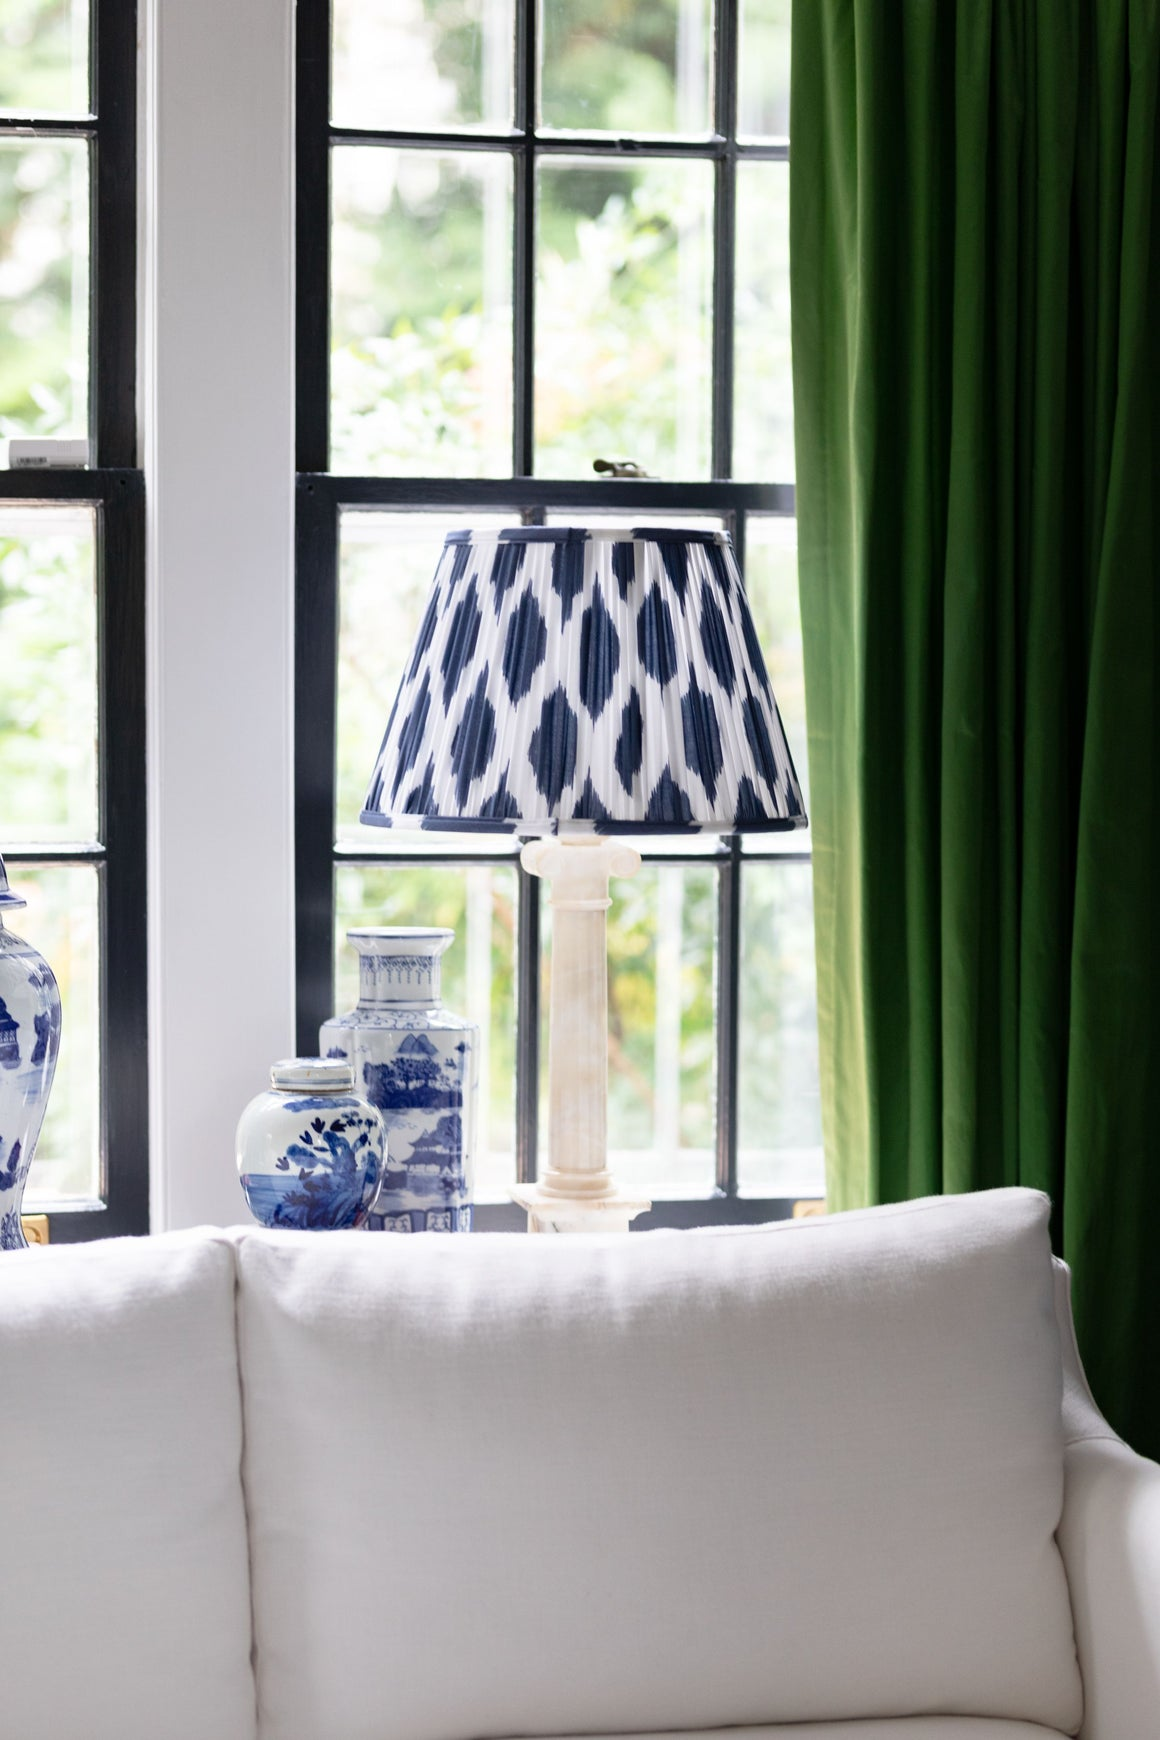 Blue lamp shade in front of green curtains.